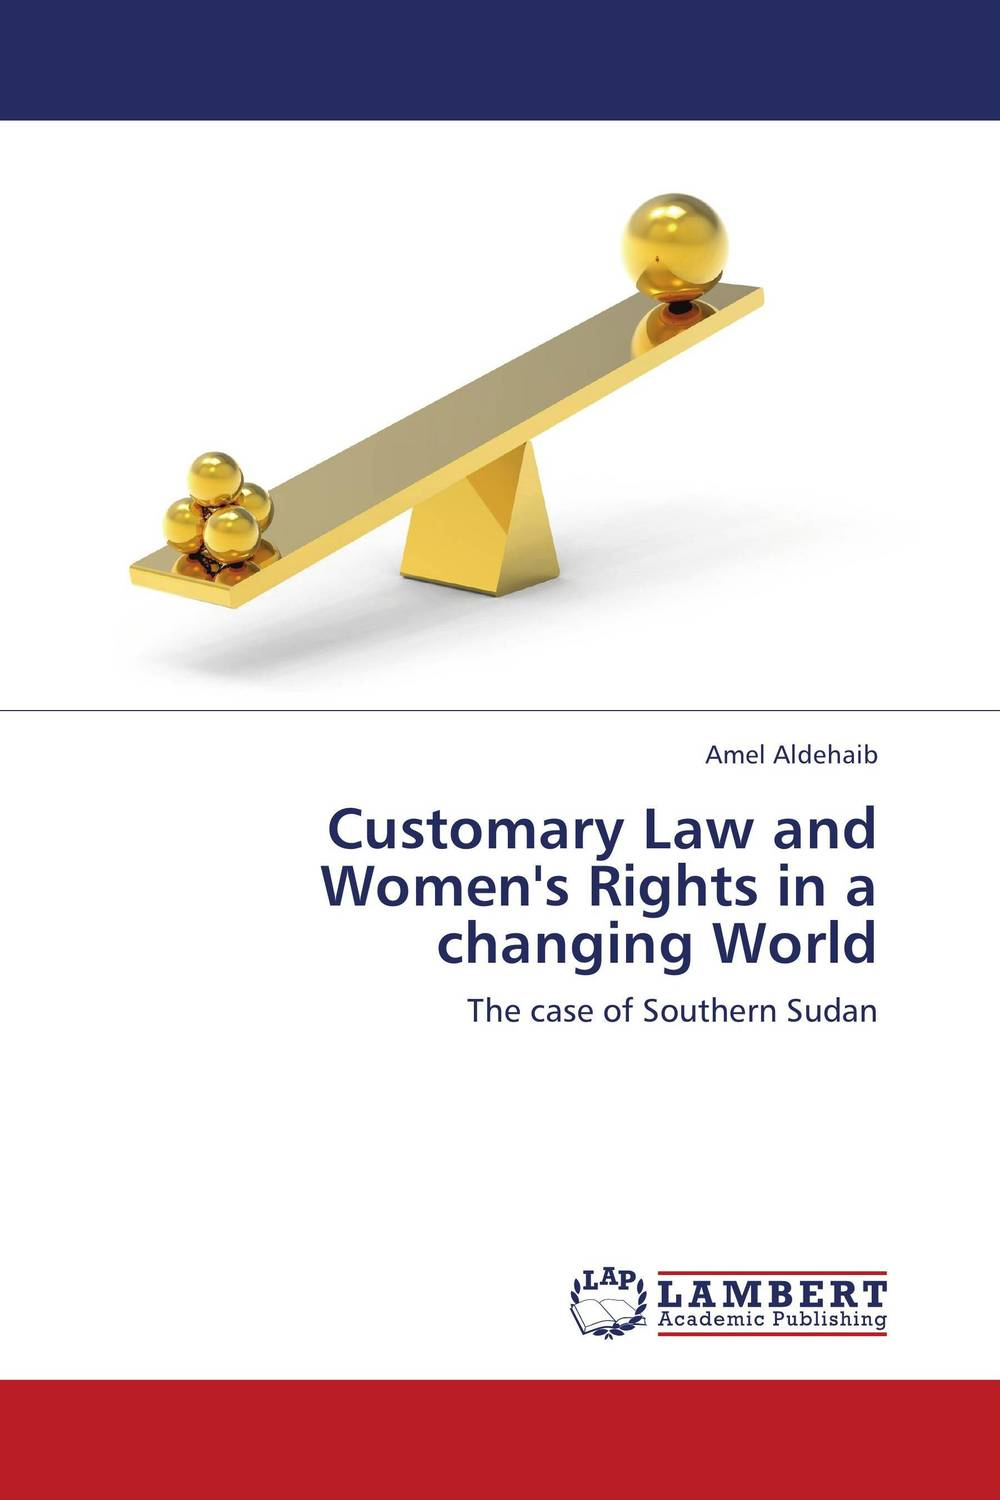 Customary Law and Women's Rights in a changing World human rights and rule of law south sudan context